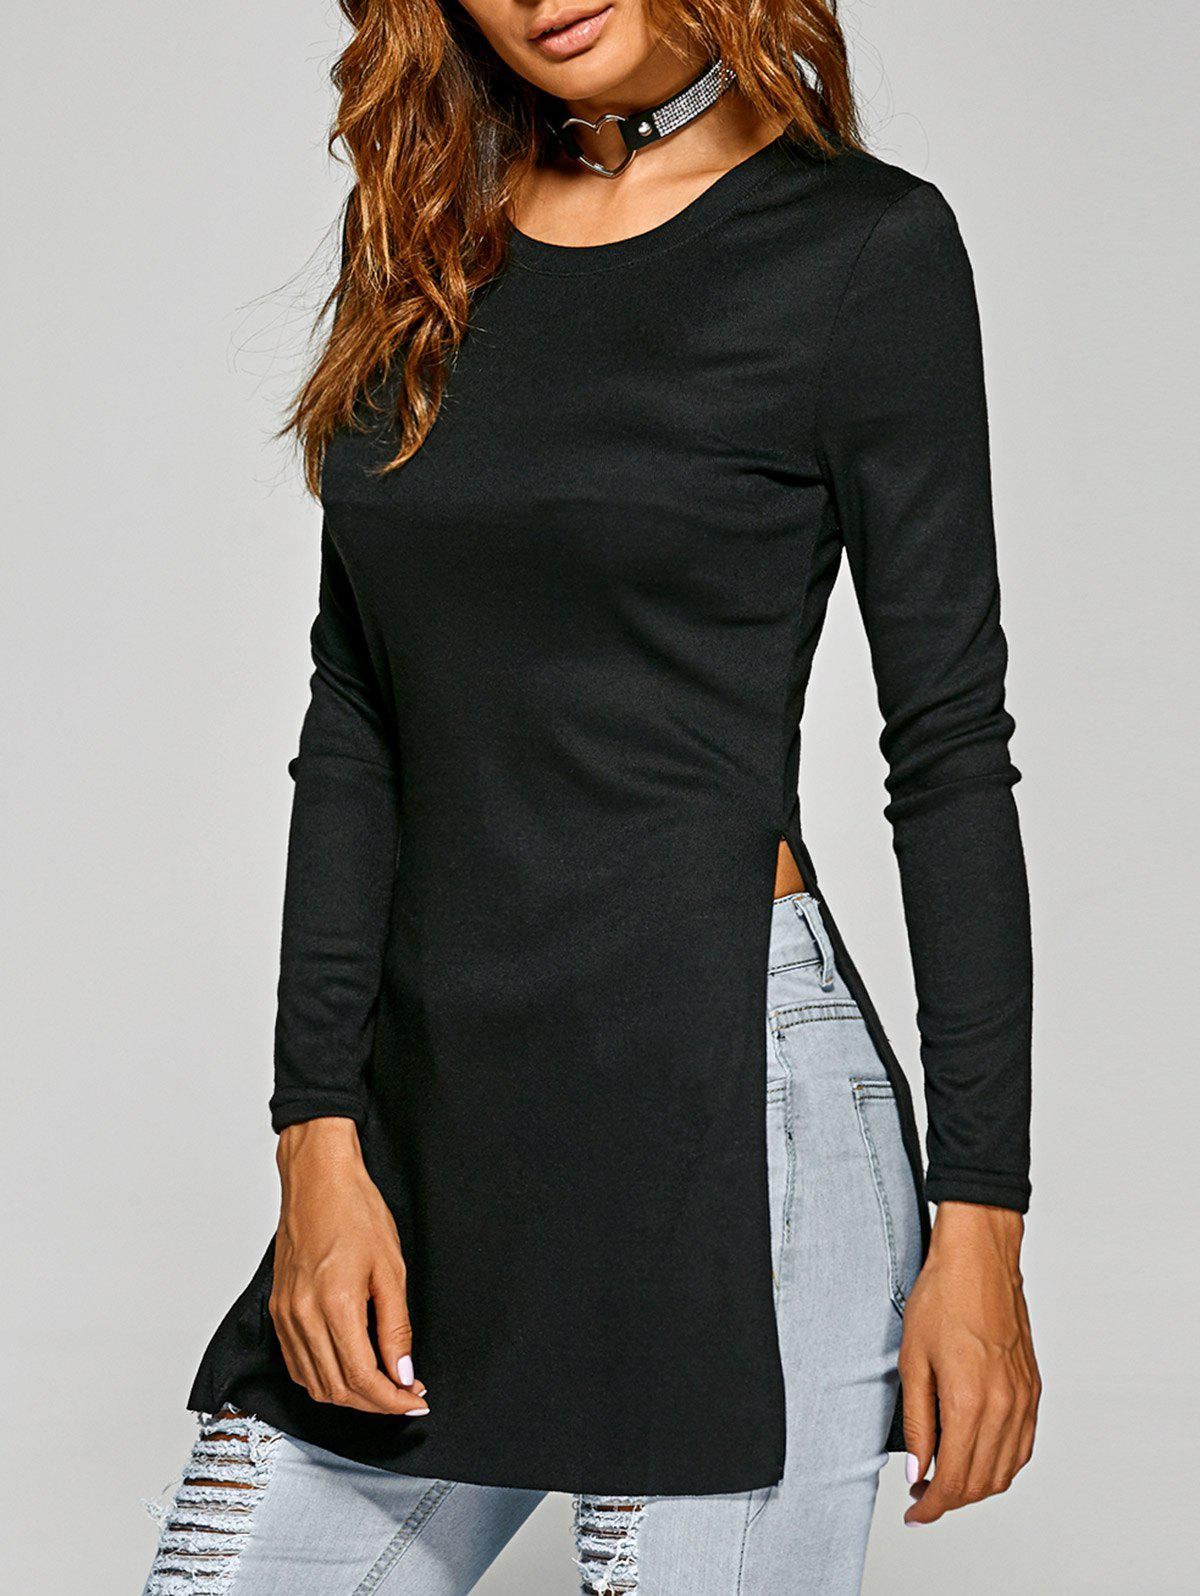 Side Slit Plain Long Sleeve Slimming T-Shirt - BLACK XL